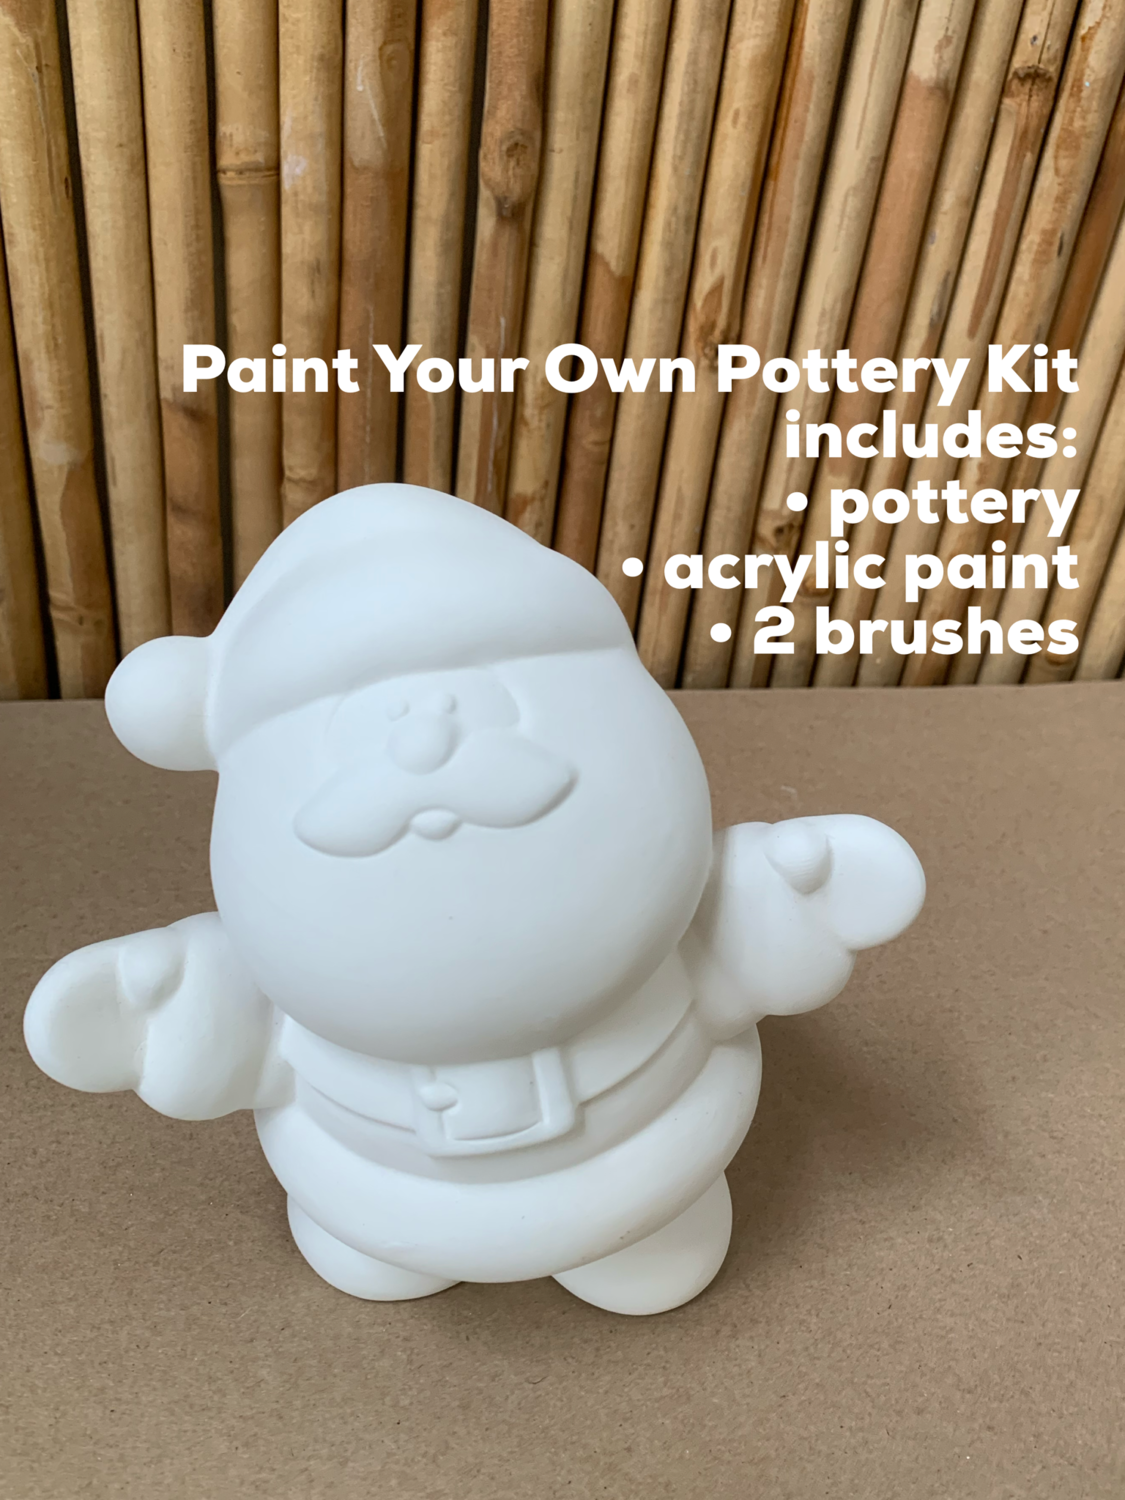 NO FIRE Paint Your Own Pottery Kit -  Ceramic Medium Santa Figurine Acrylic Painting Kit